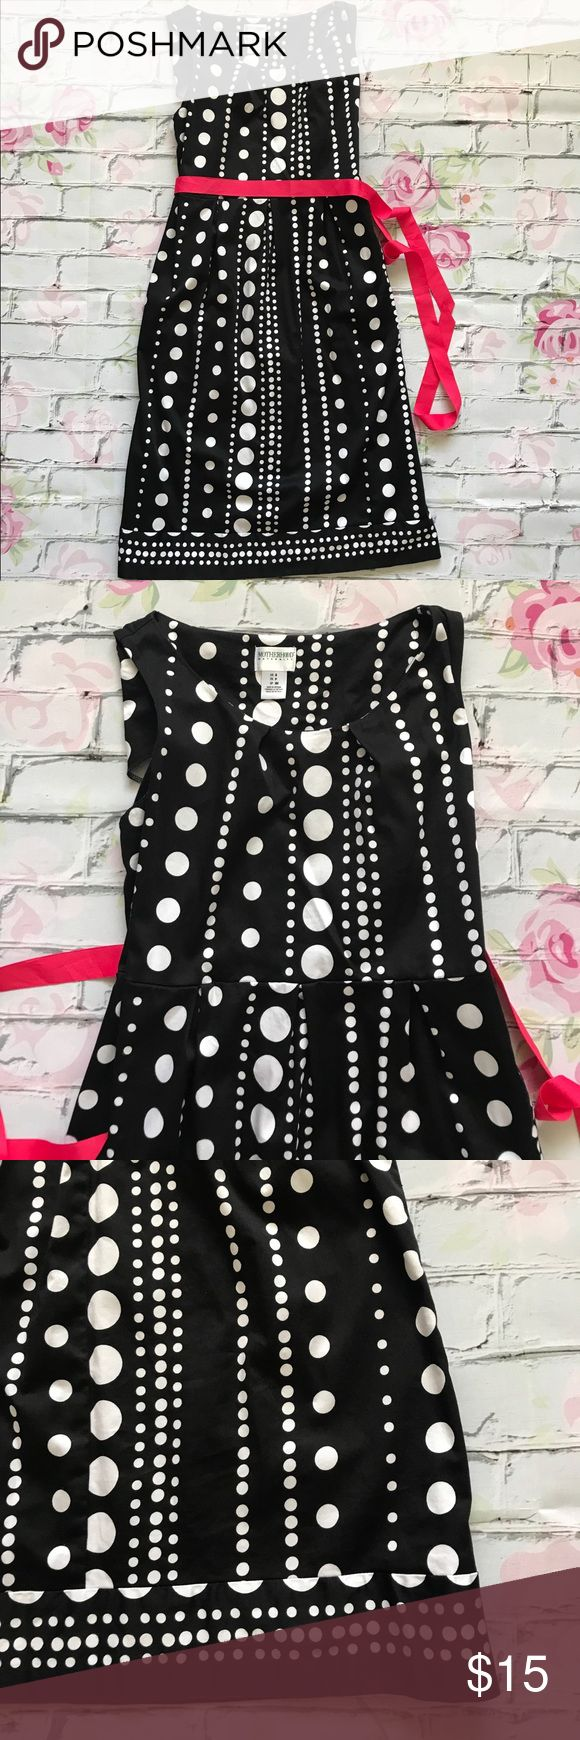 Motherhood Maternity Black White Polka Dot Dress Motherhood Maternity Black White Polka Dot  Elastic Waist Hot Pink Tie Dress.  Stains on the ribbon and fine lines on the back of the dress.  Overall still in good condition. Measurements Approximate: Armpit to Armpit: 15.5', Shoulder: 12', Waist: 13.5', Hip: 17', Length: 34'. Motherhood Maternity Dresses